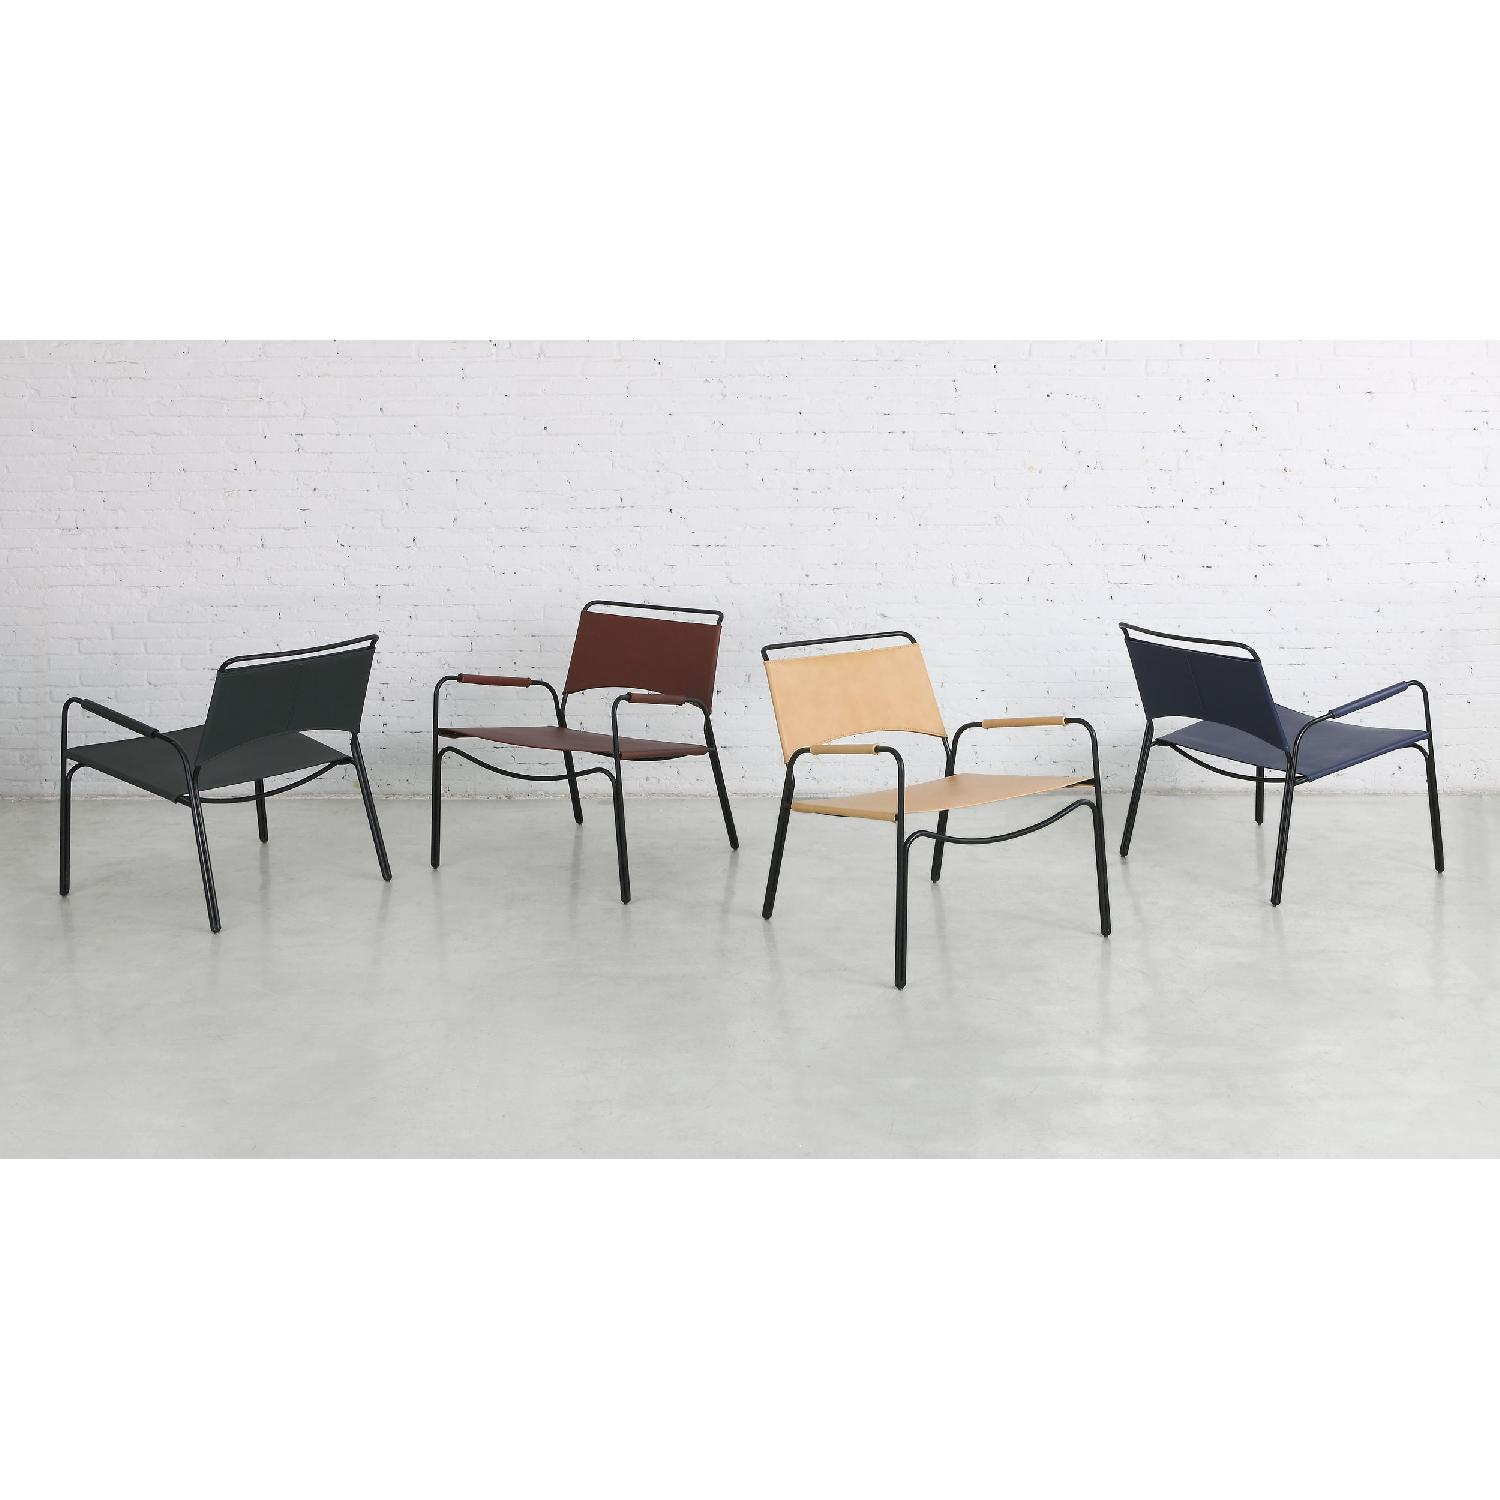 m.a.d Furniture Design Trace Lounge Chair - image-4